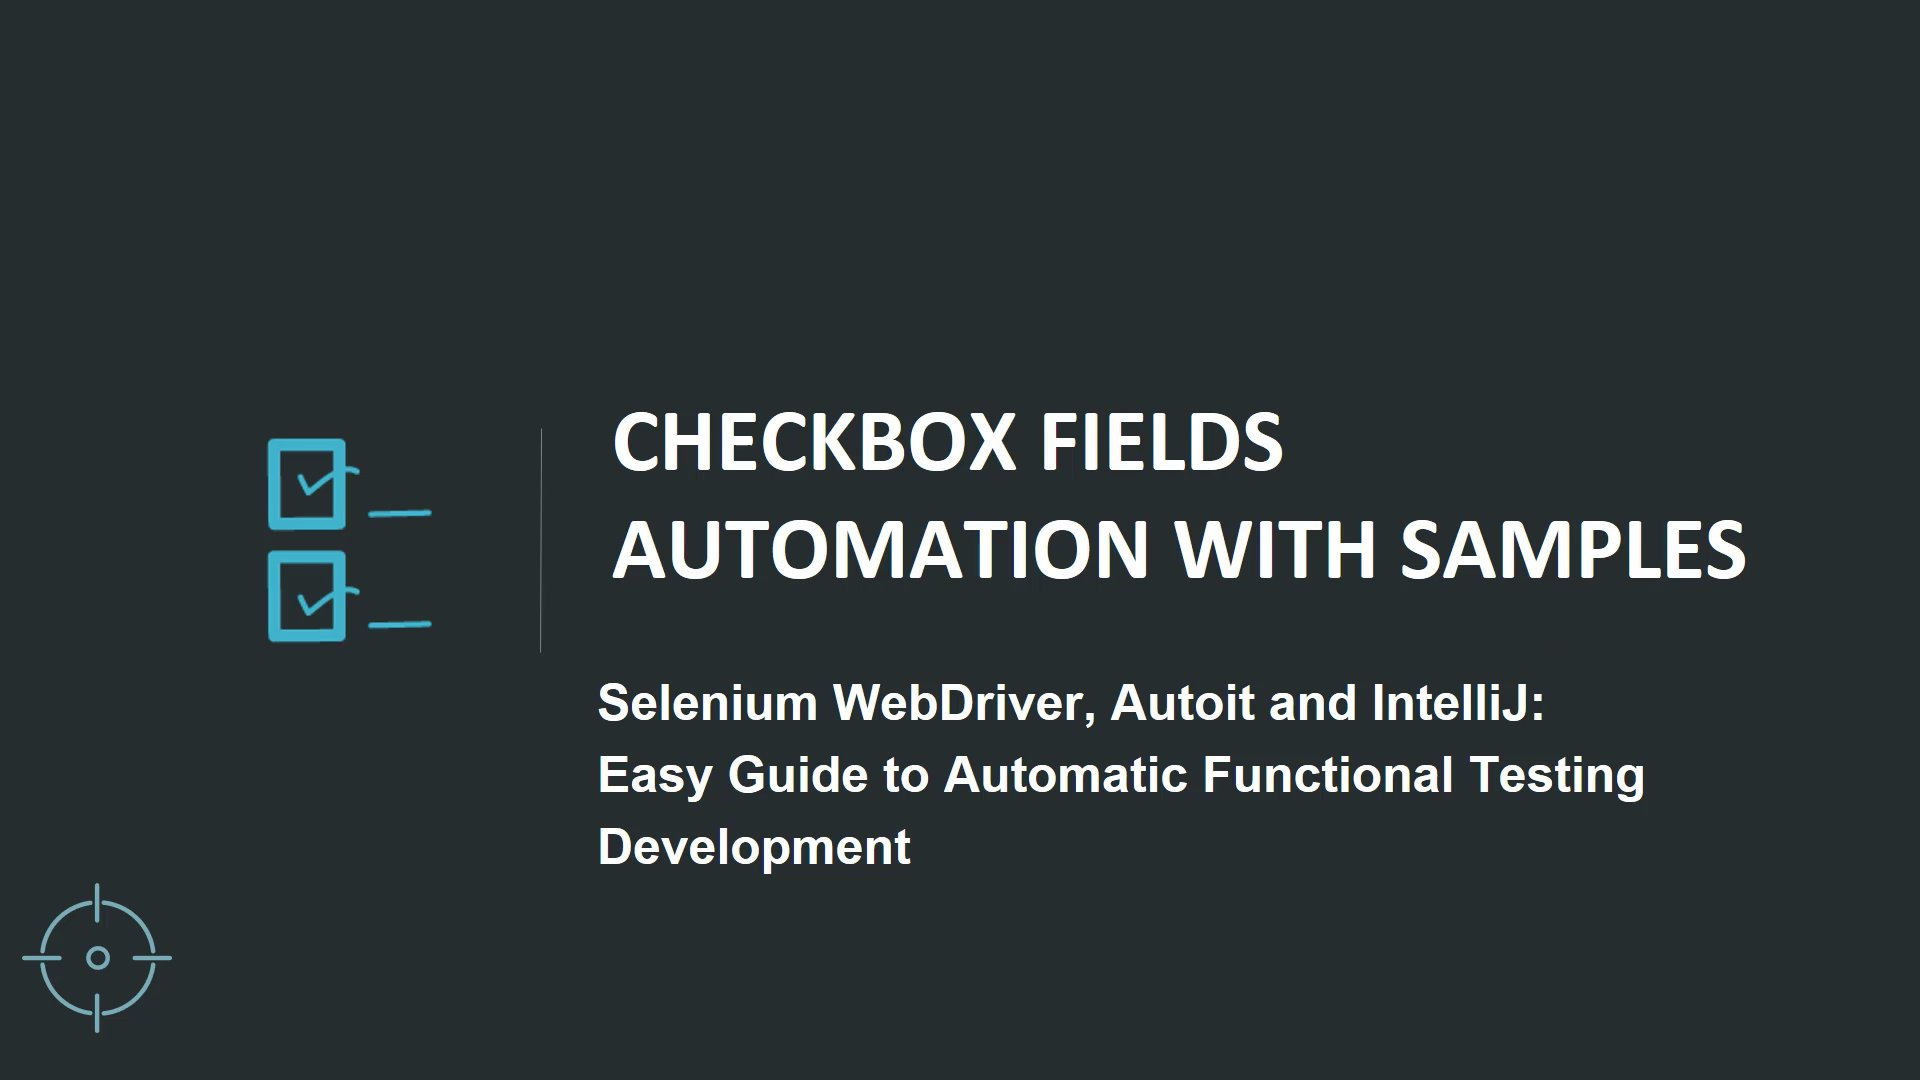 Selenium: Easy Guide to Automated Functional Testing Development